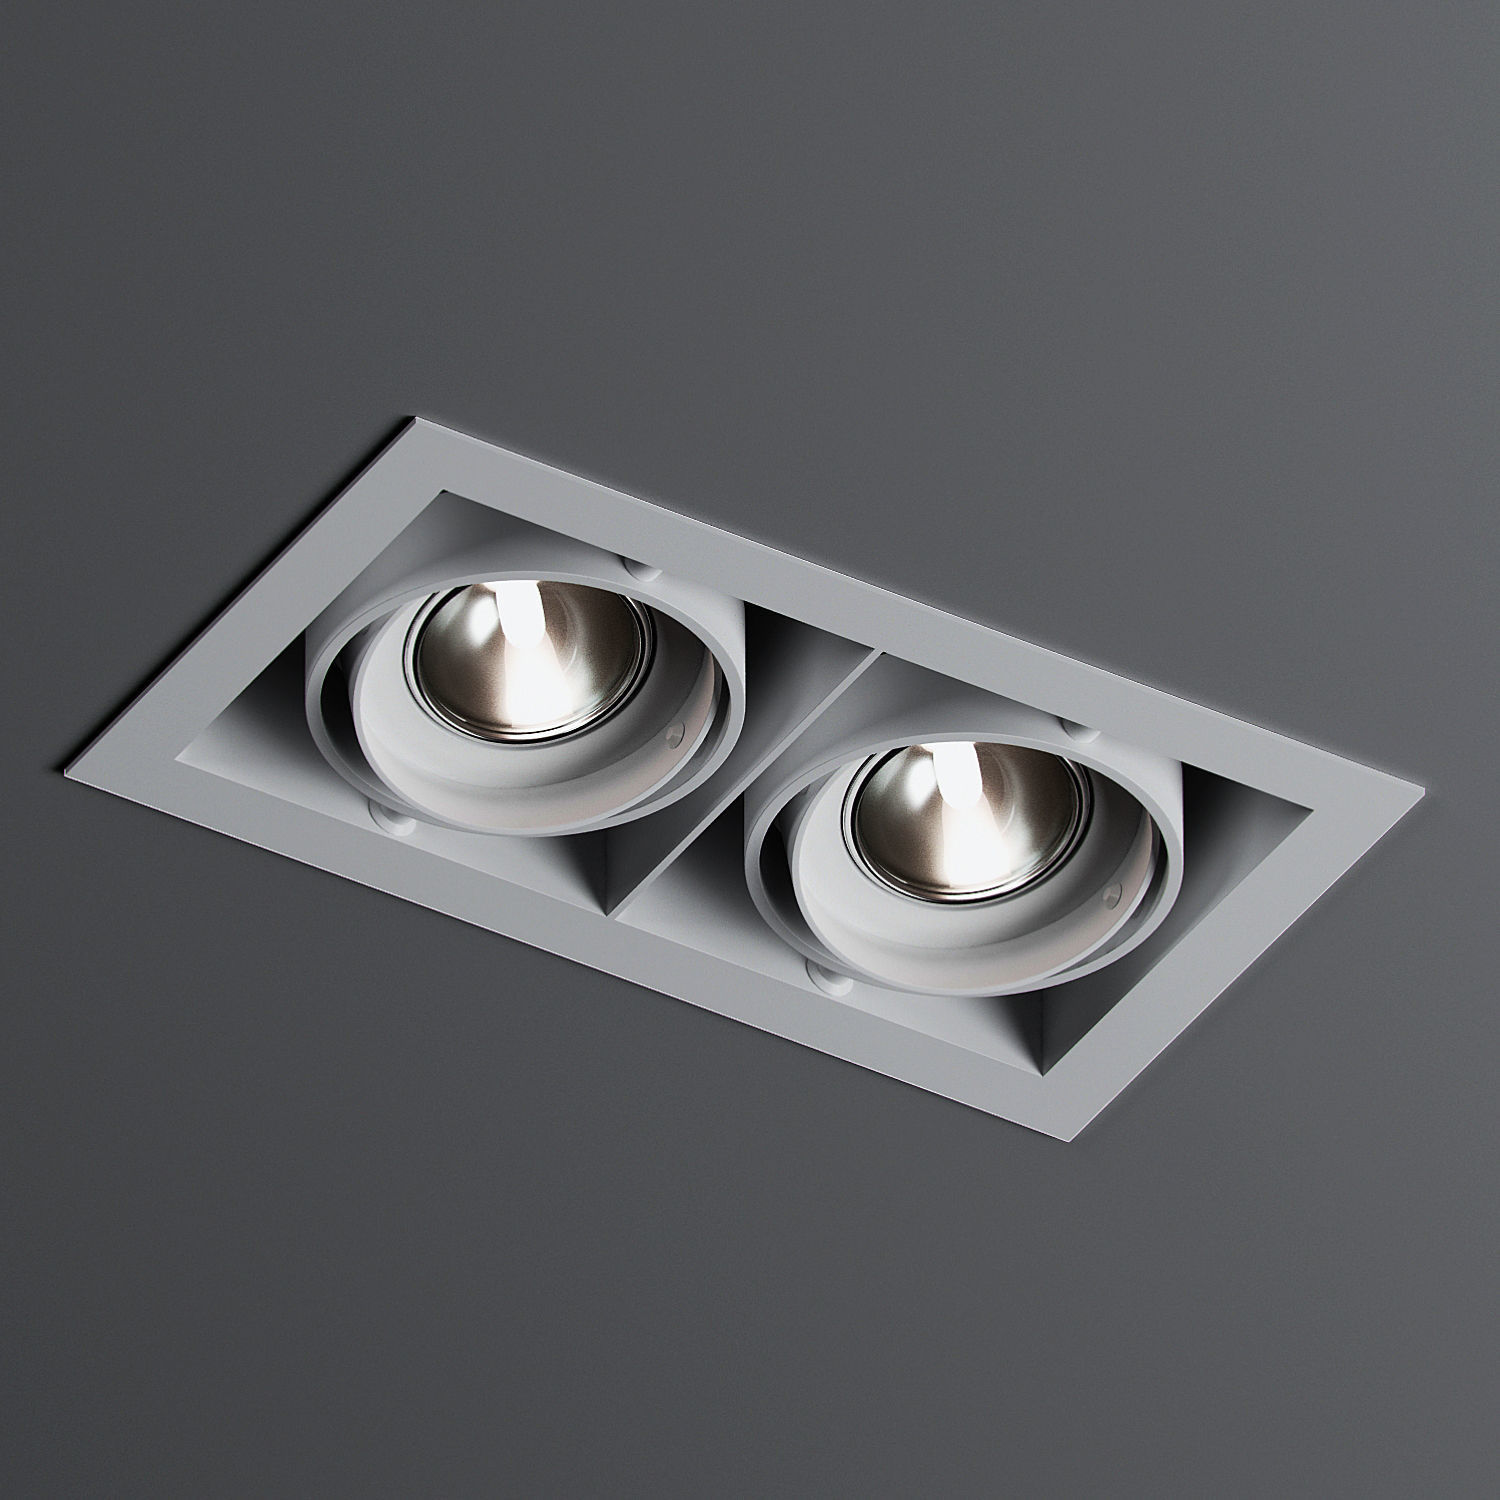 MINIGRID IN 2 50 Recessed Lamp by Delta Light